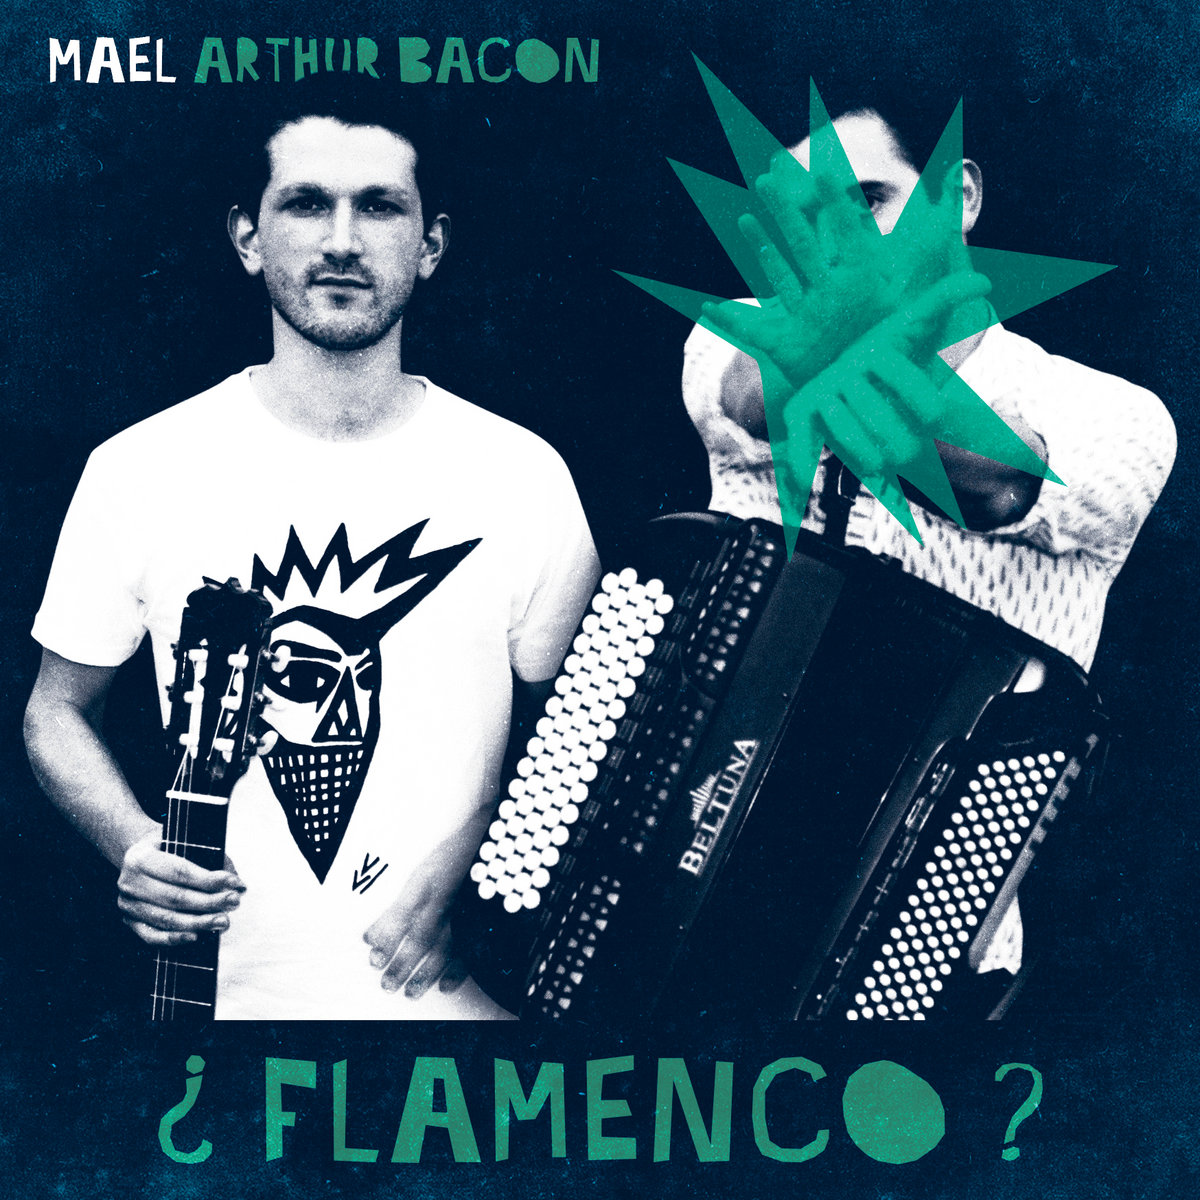 mael arthur bacon album flamenco vol2